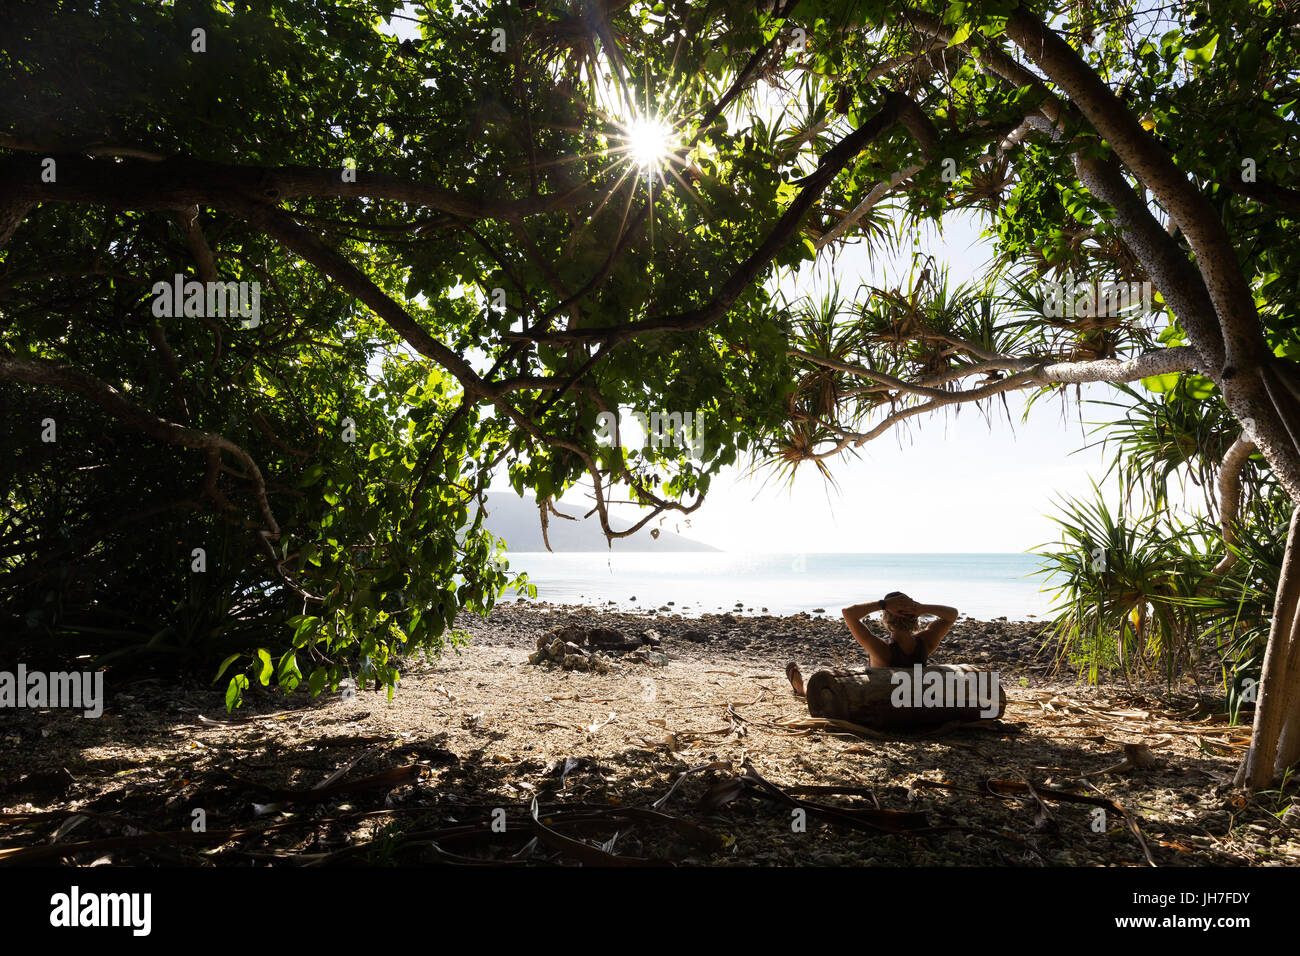 A person leans against a log and relaxes in the shade of a tree, out of the hot sun, on a beautiful tropical beach - Stock Image